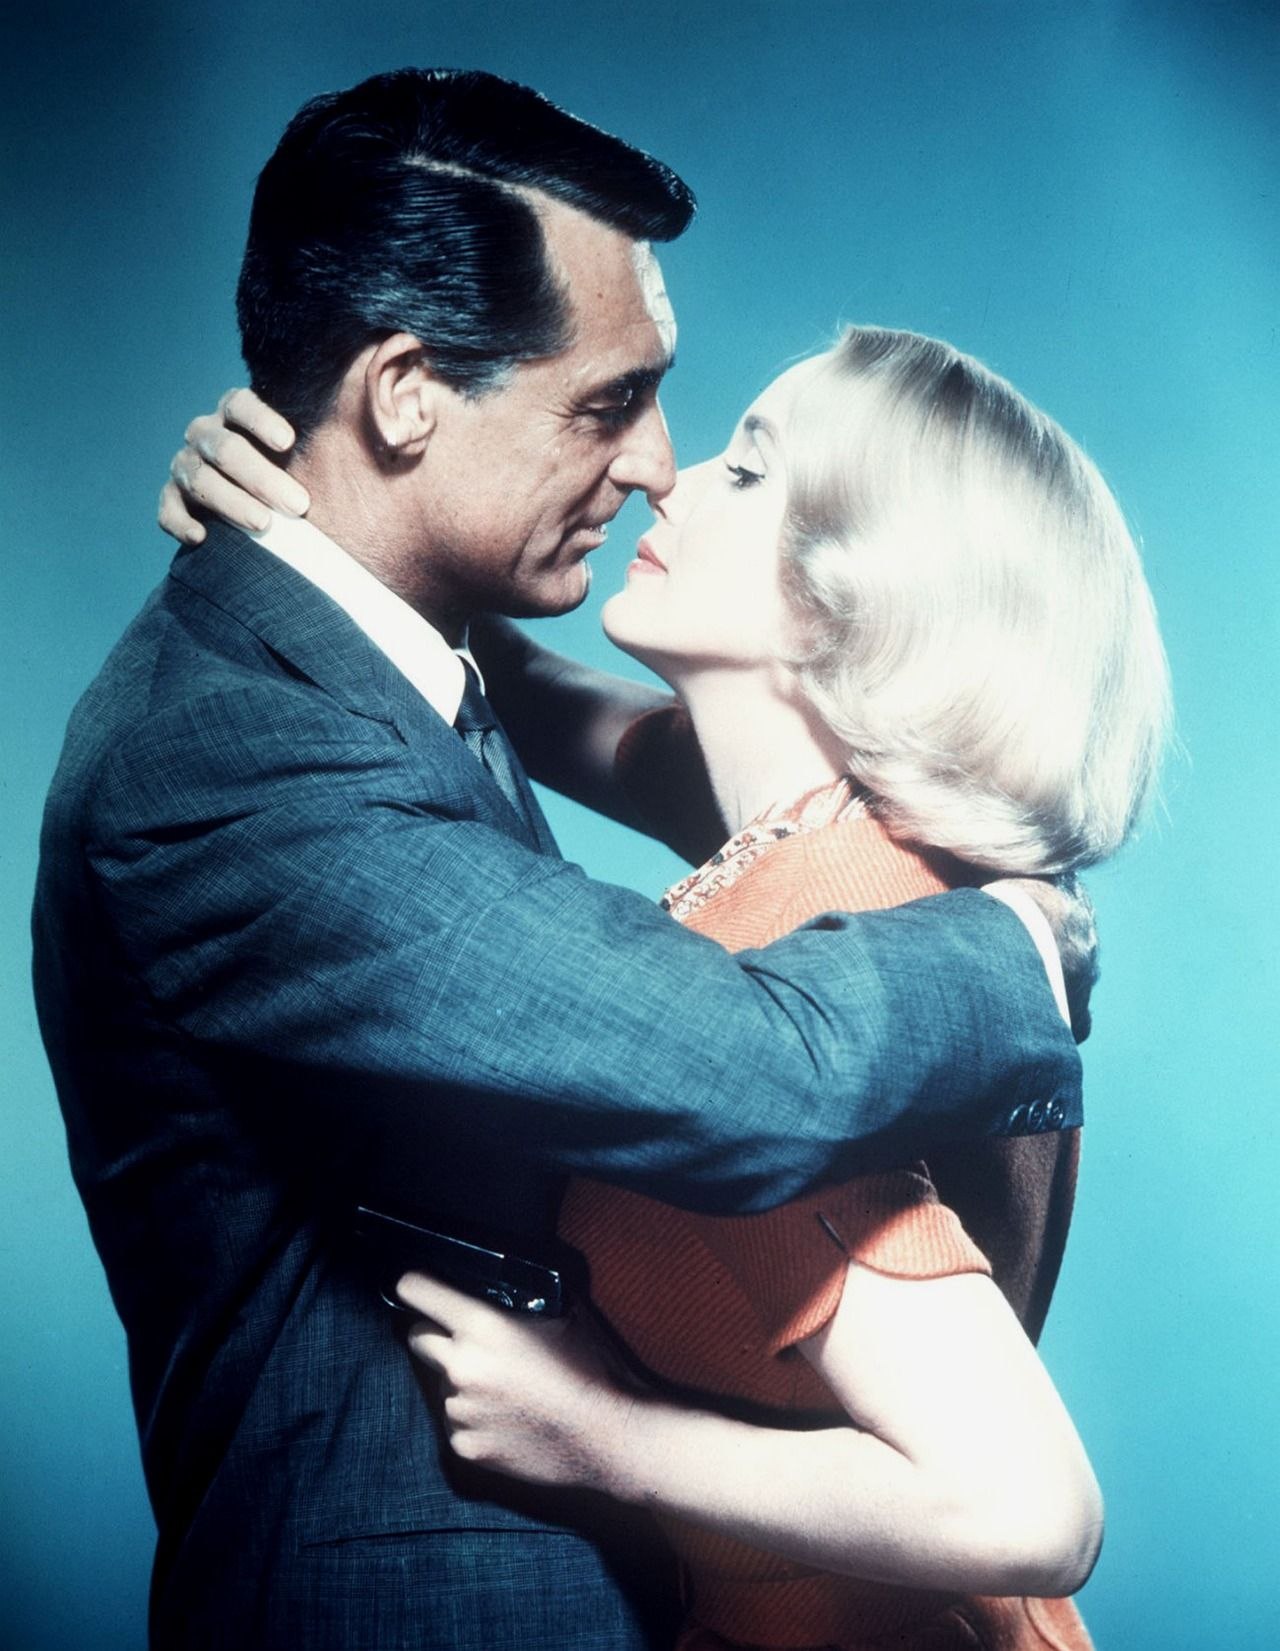 Cary Grant and Eva Marie Saint - North by Northwest - Directed by Alfred Hitchcock - 1959